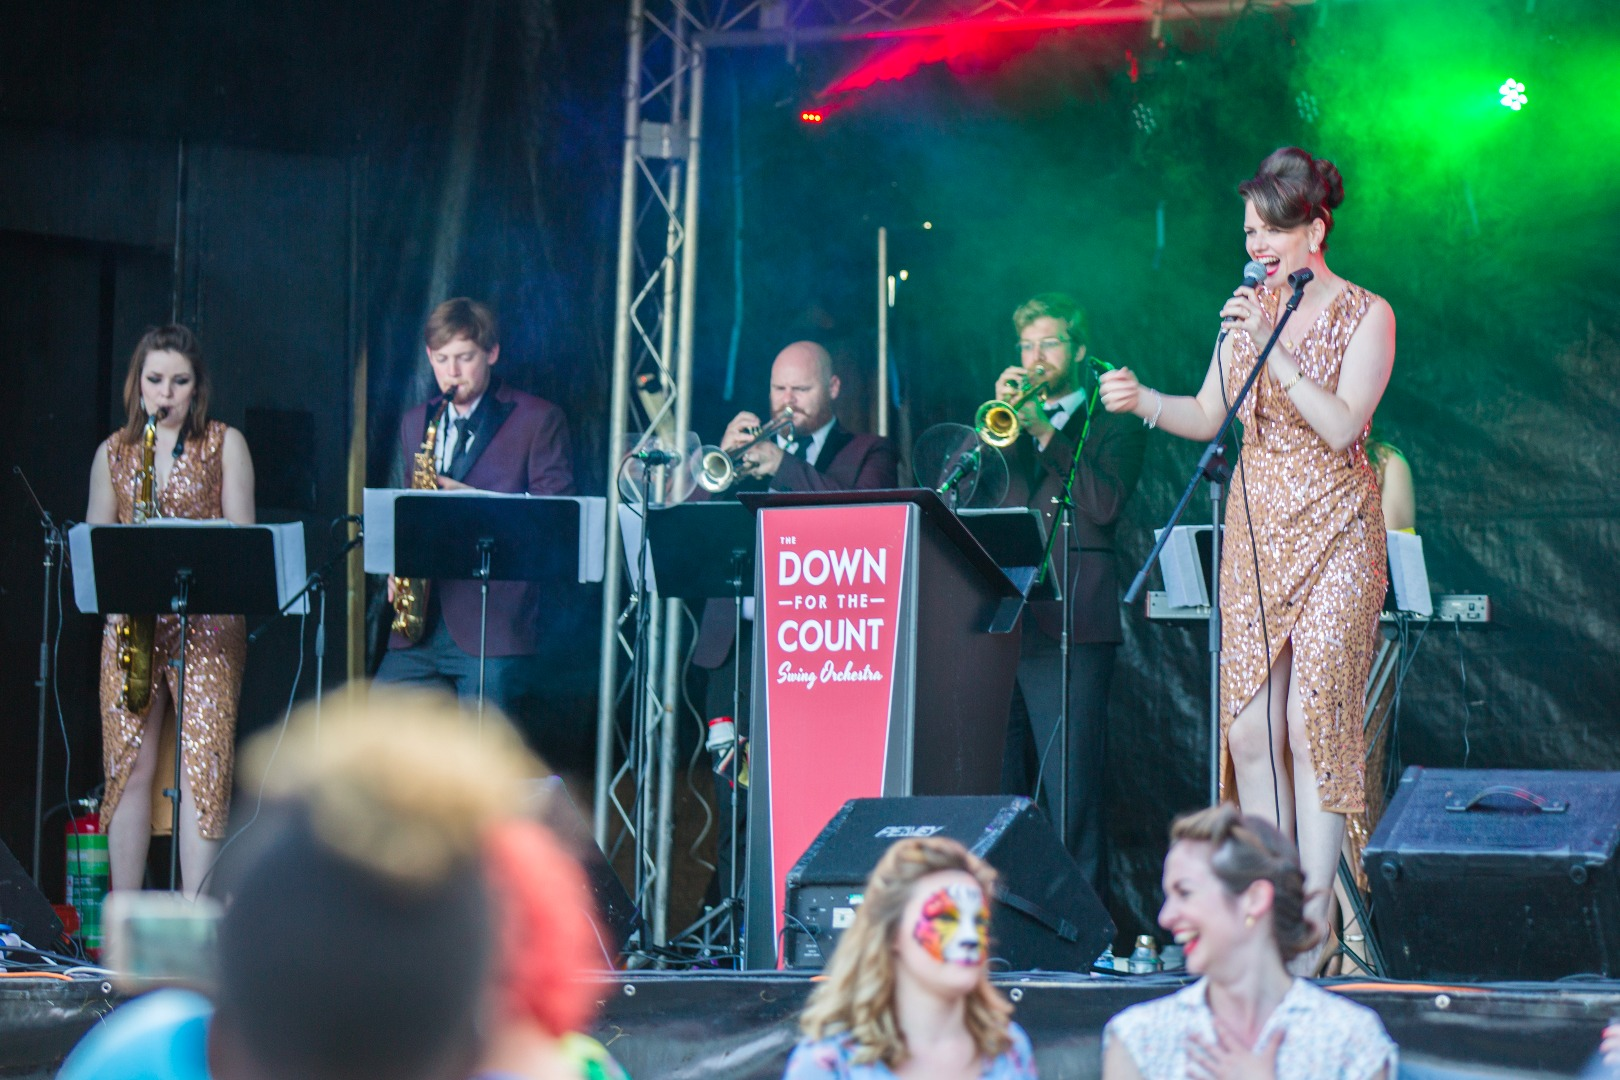 The Down for the Count Motown Collective in action at the Woolwich Arsenal London public event